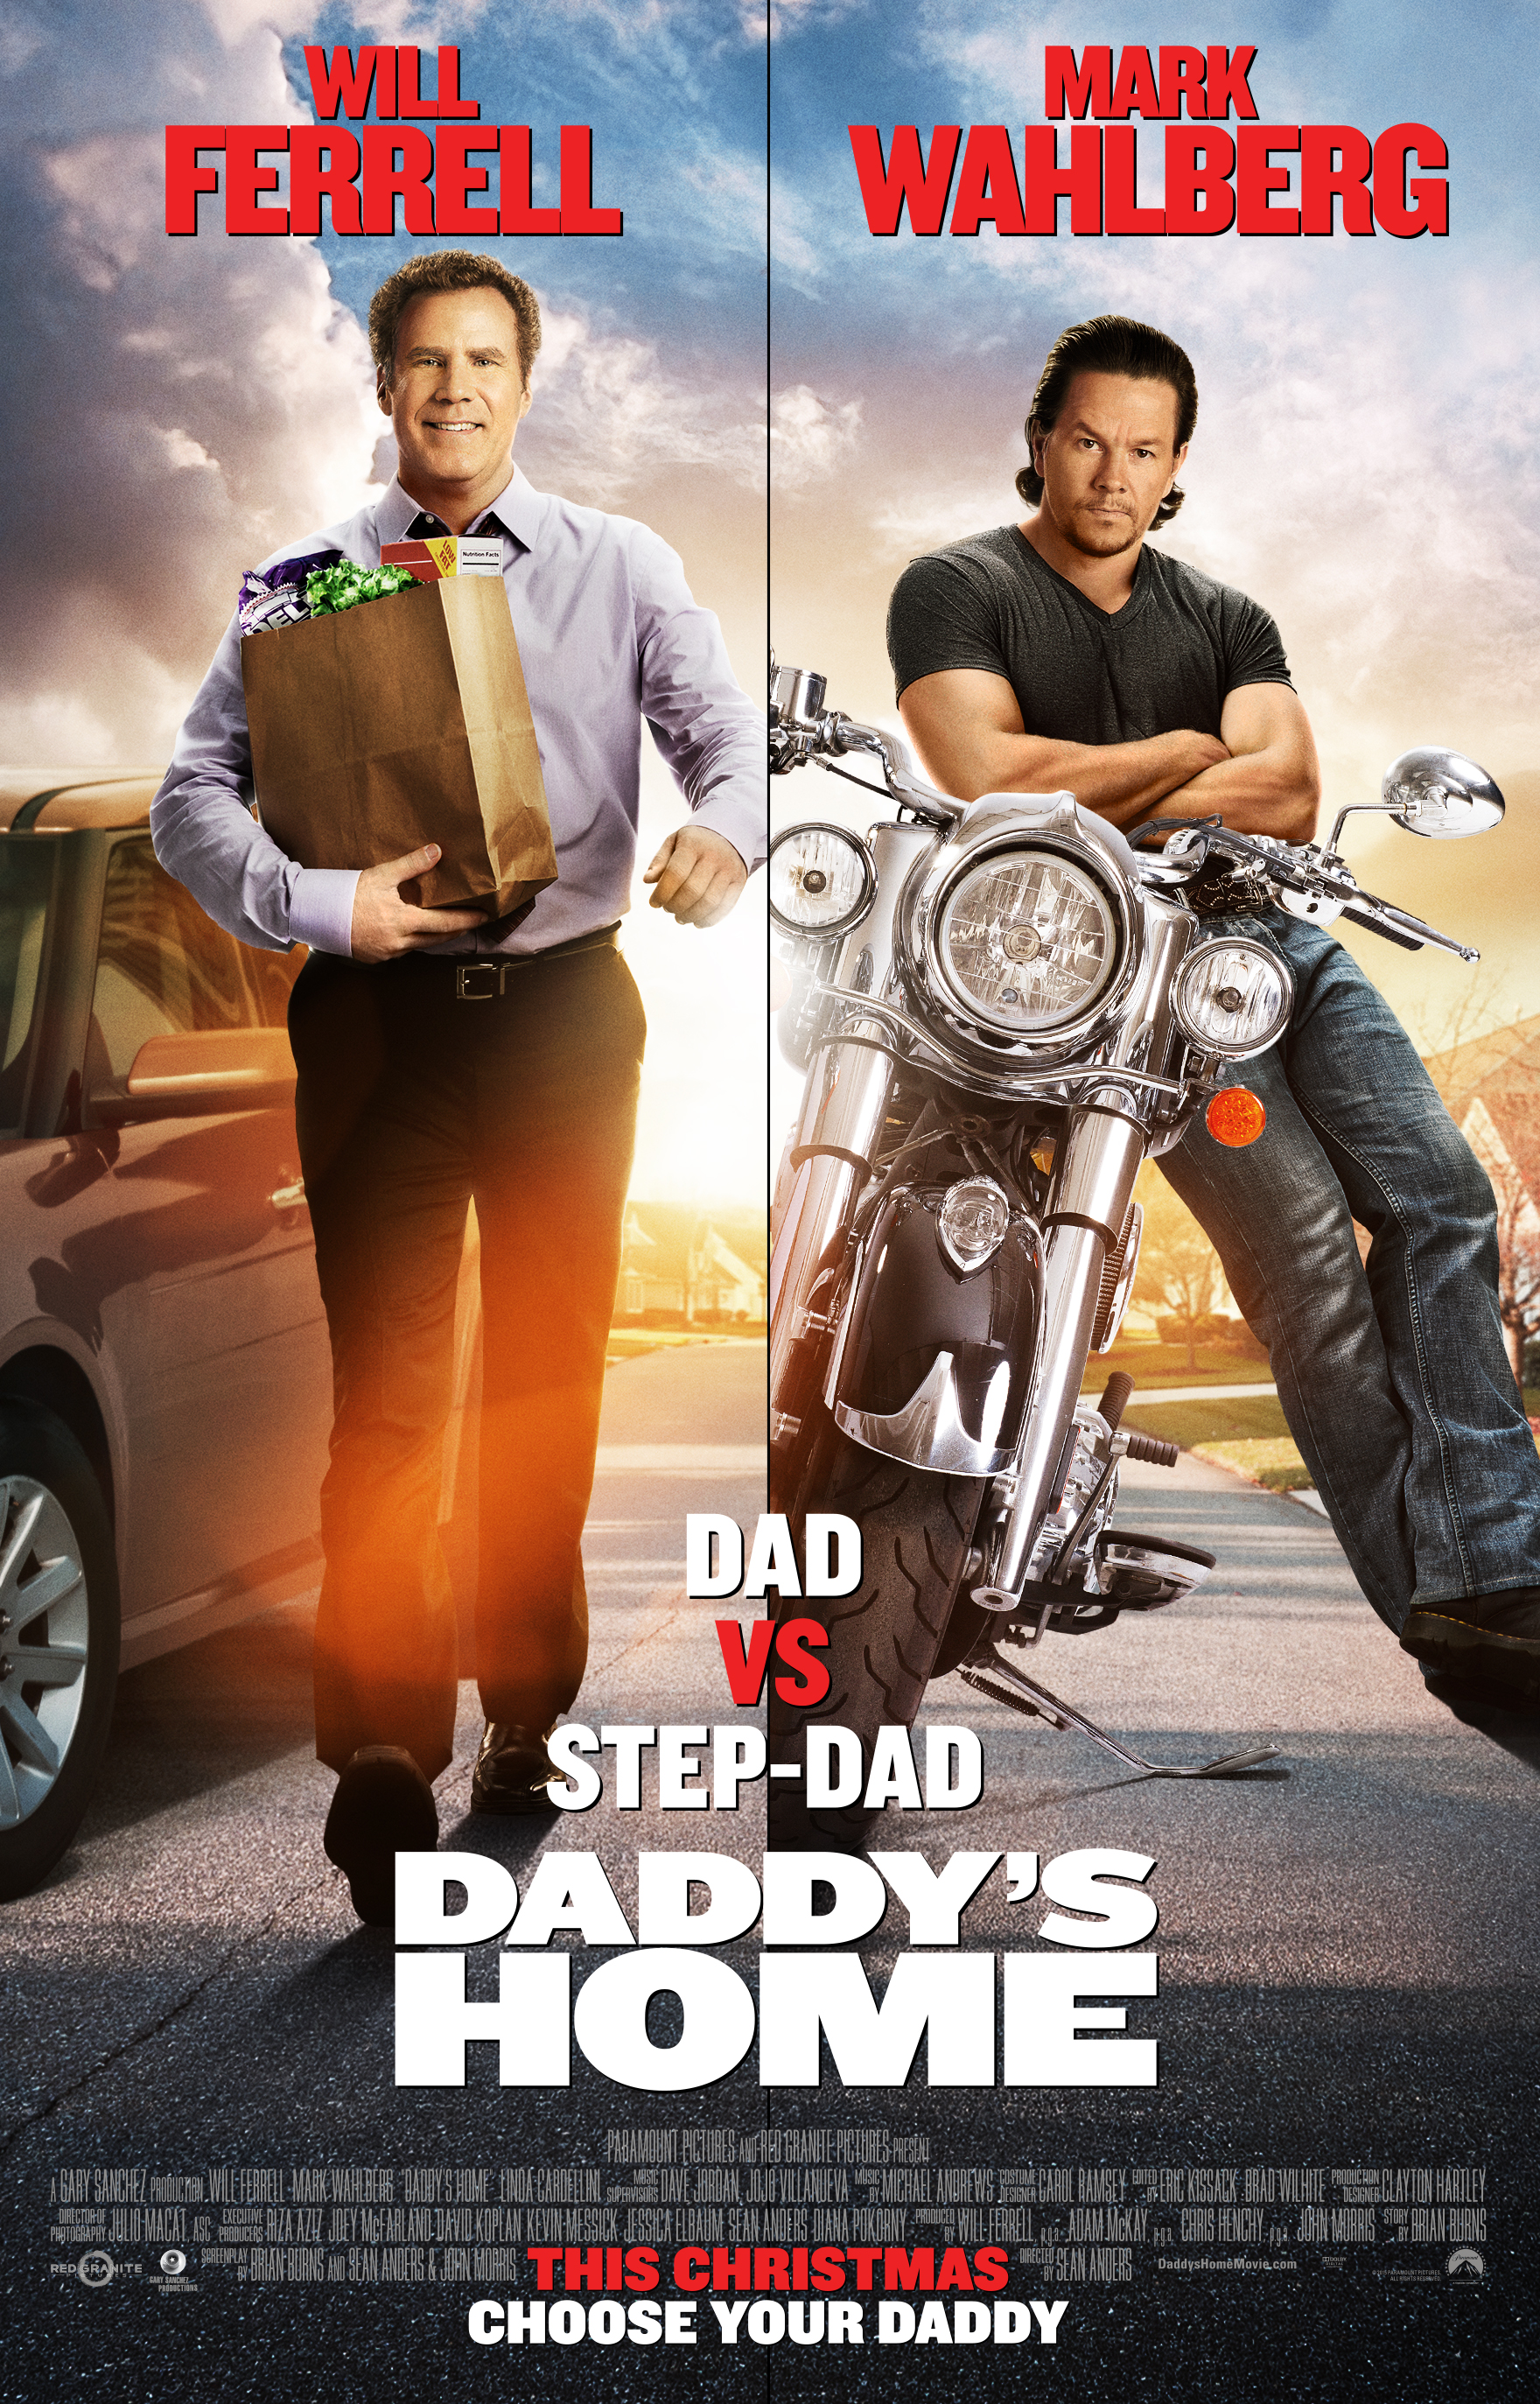 #DaddysHome #Movie #Fandango #FandangoFamily #ad